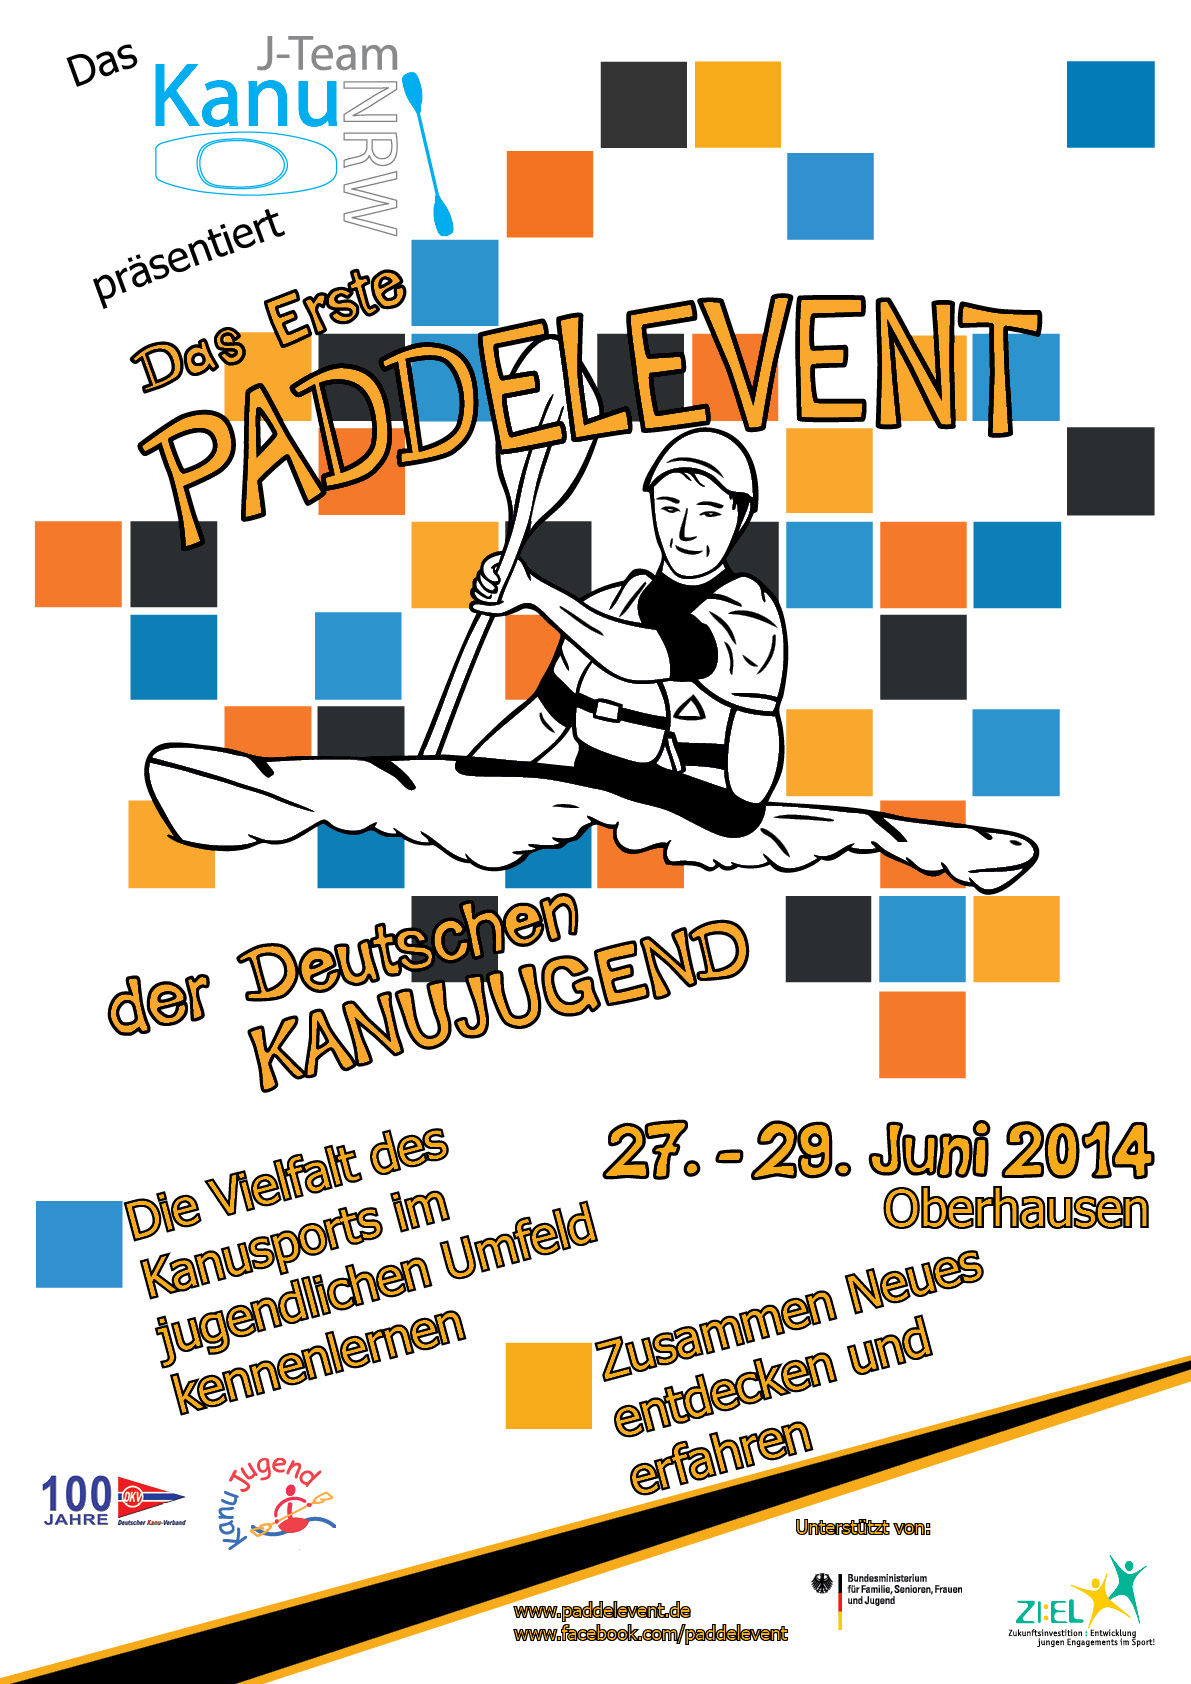 ds-plakat-paddelevent-a2-2-cmyk